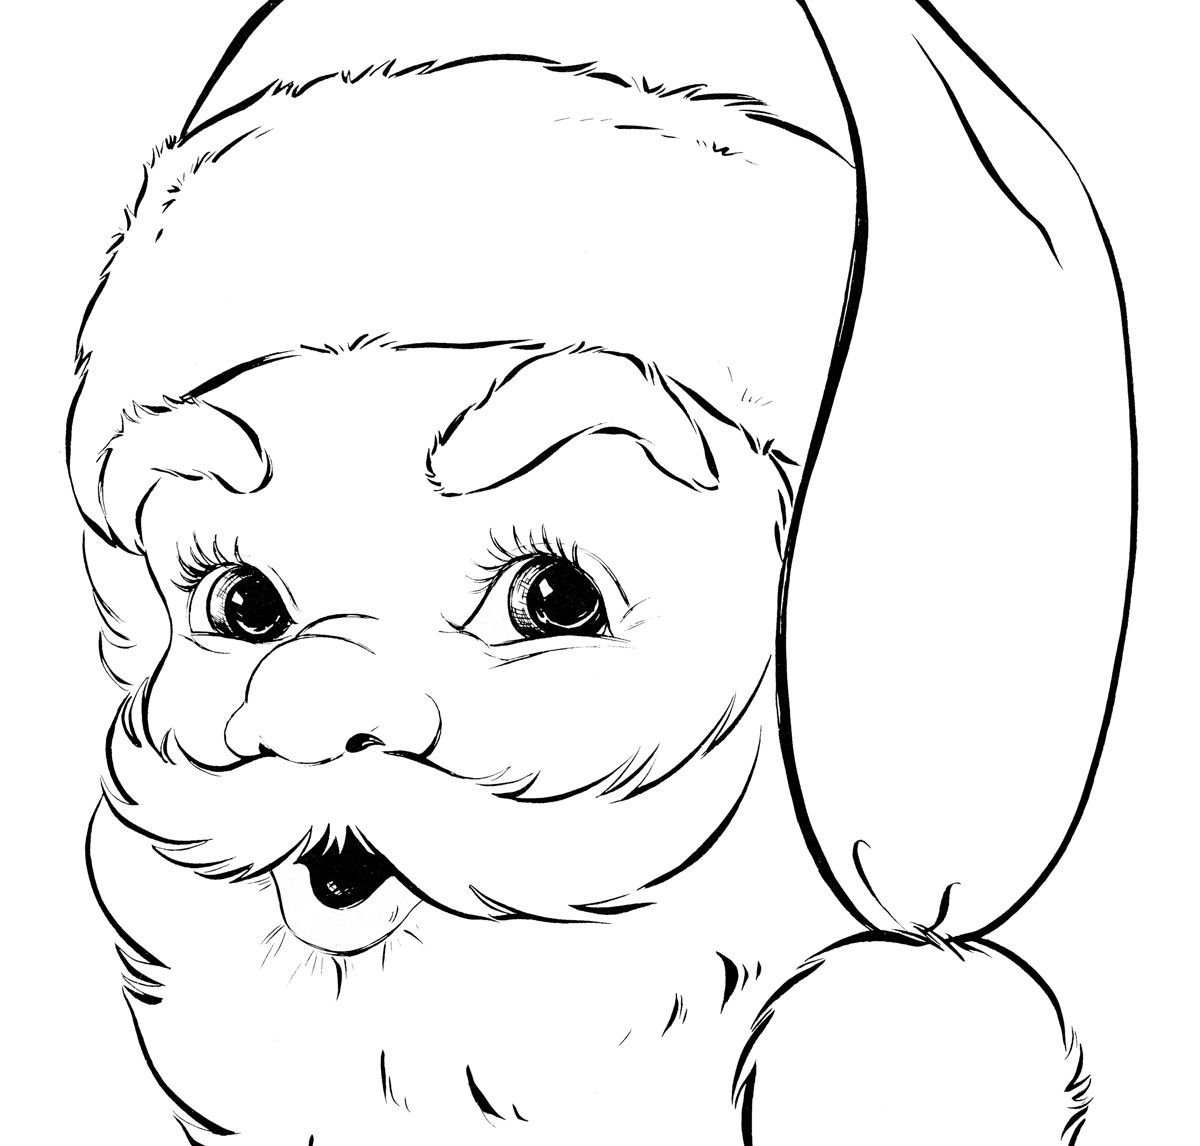 Santa Face Coloring Page With Retro Embroidery Patterns Pinterest